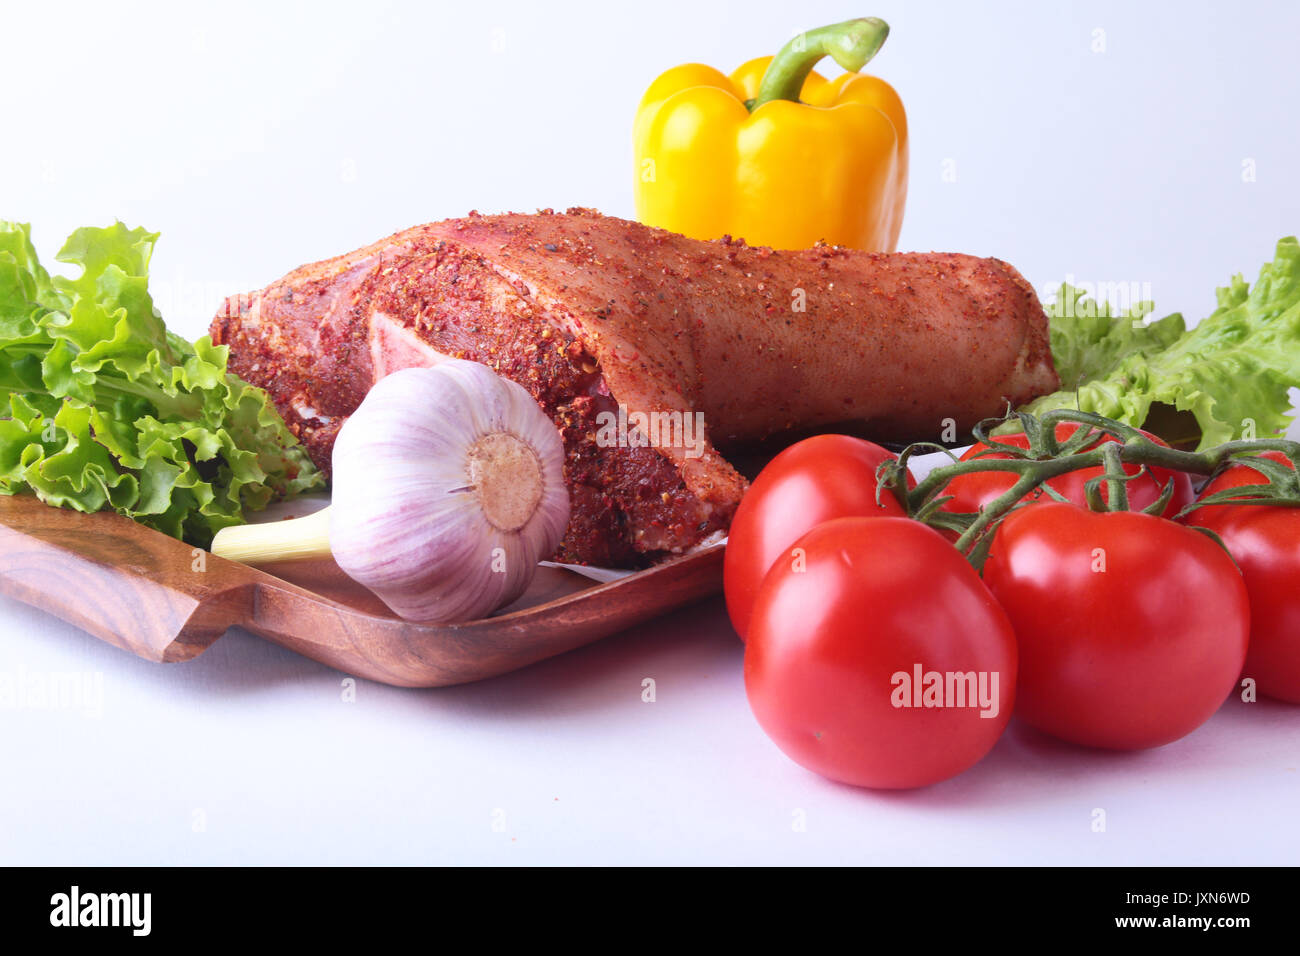 Raw pork knuckle and vegetables, garlic, tomatoes, bell pepper. spices and lettuce leaves on a cutting board. Selective - Stock Image